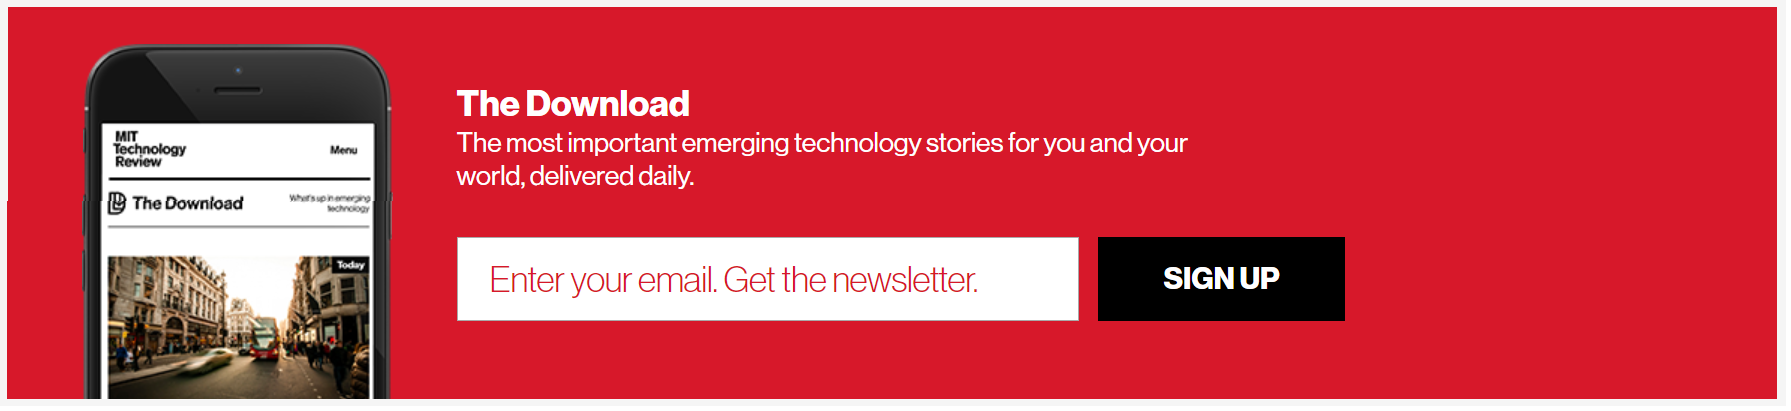 The Best Tech Newsletters to Subscribe to - Rahim - Medium